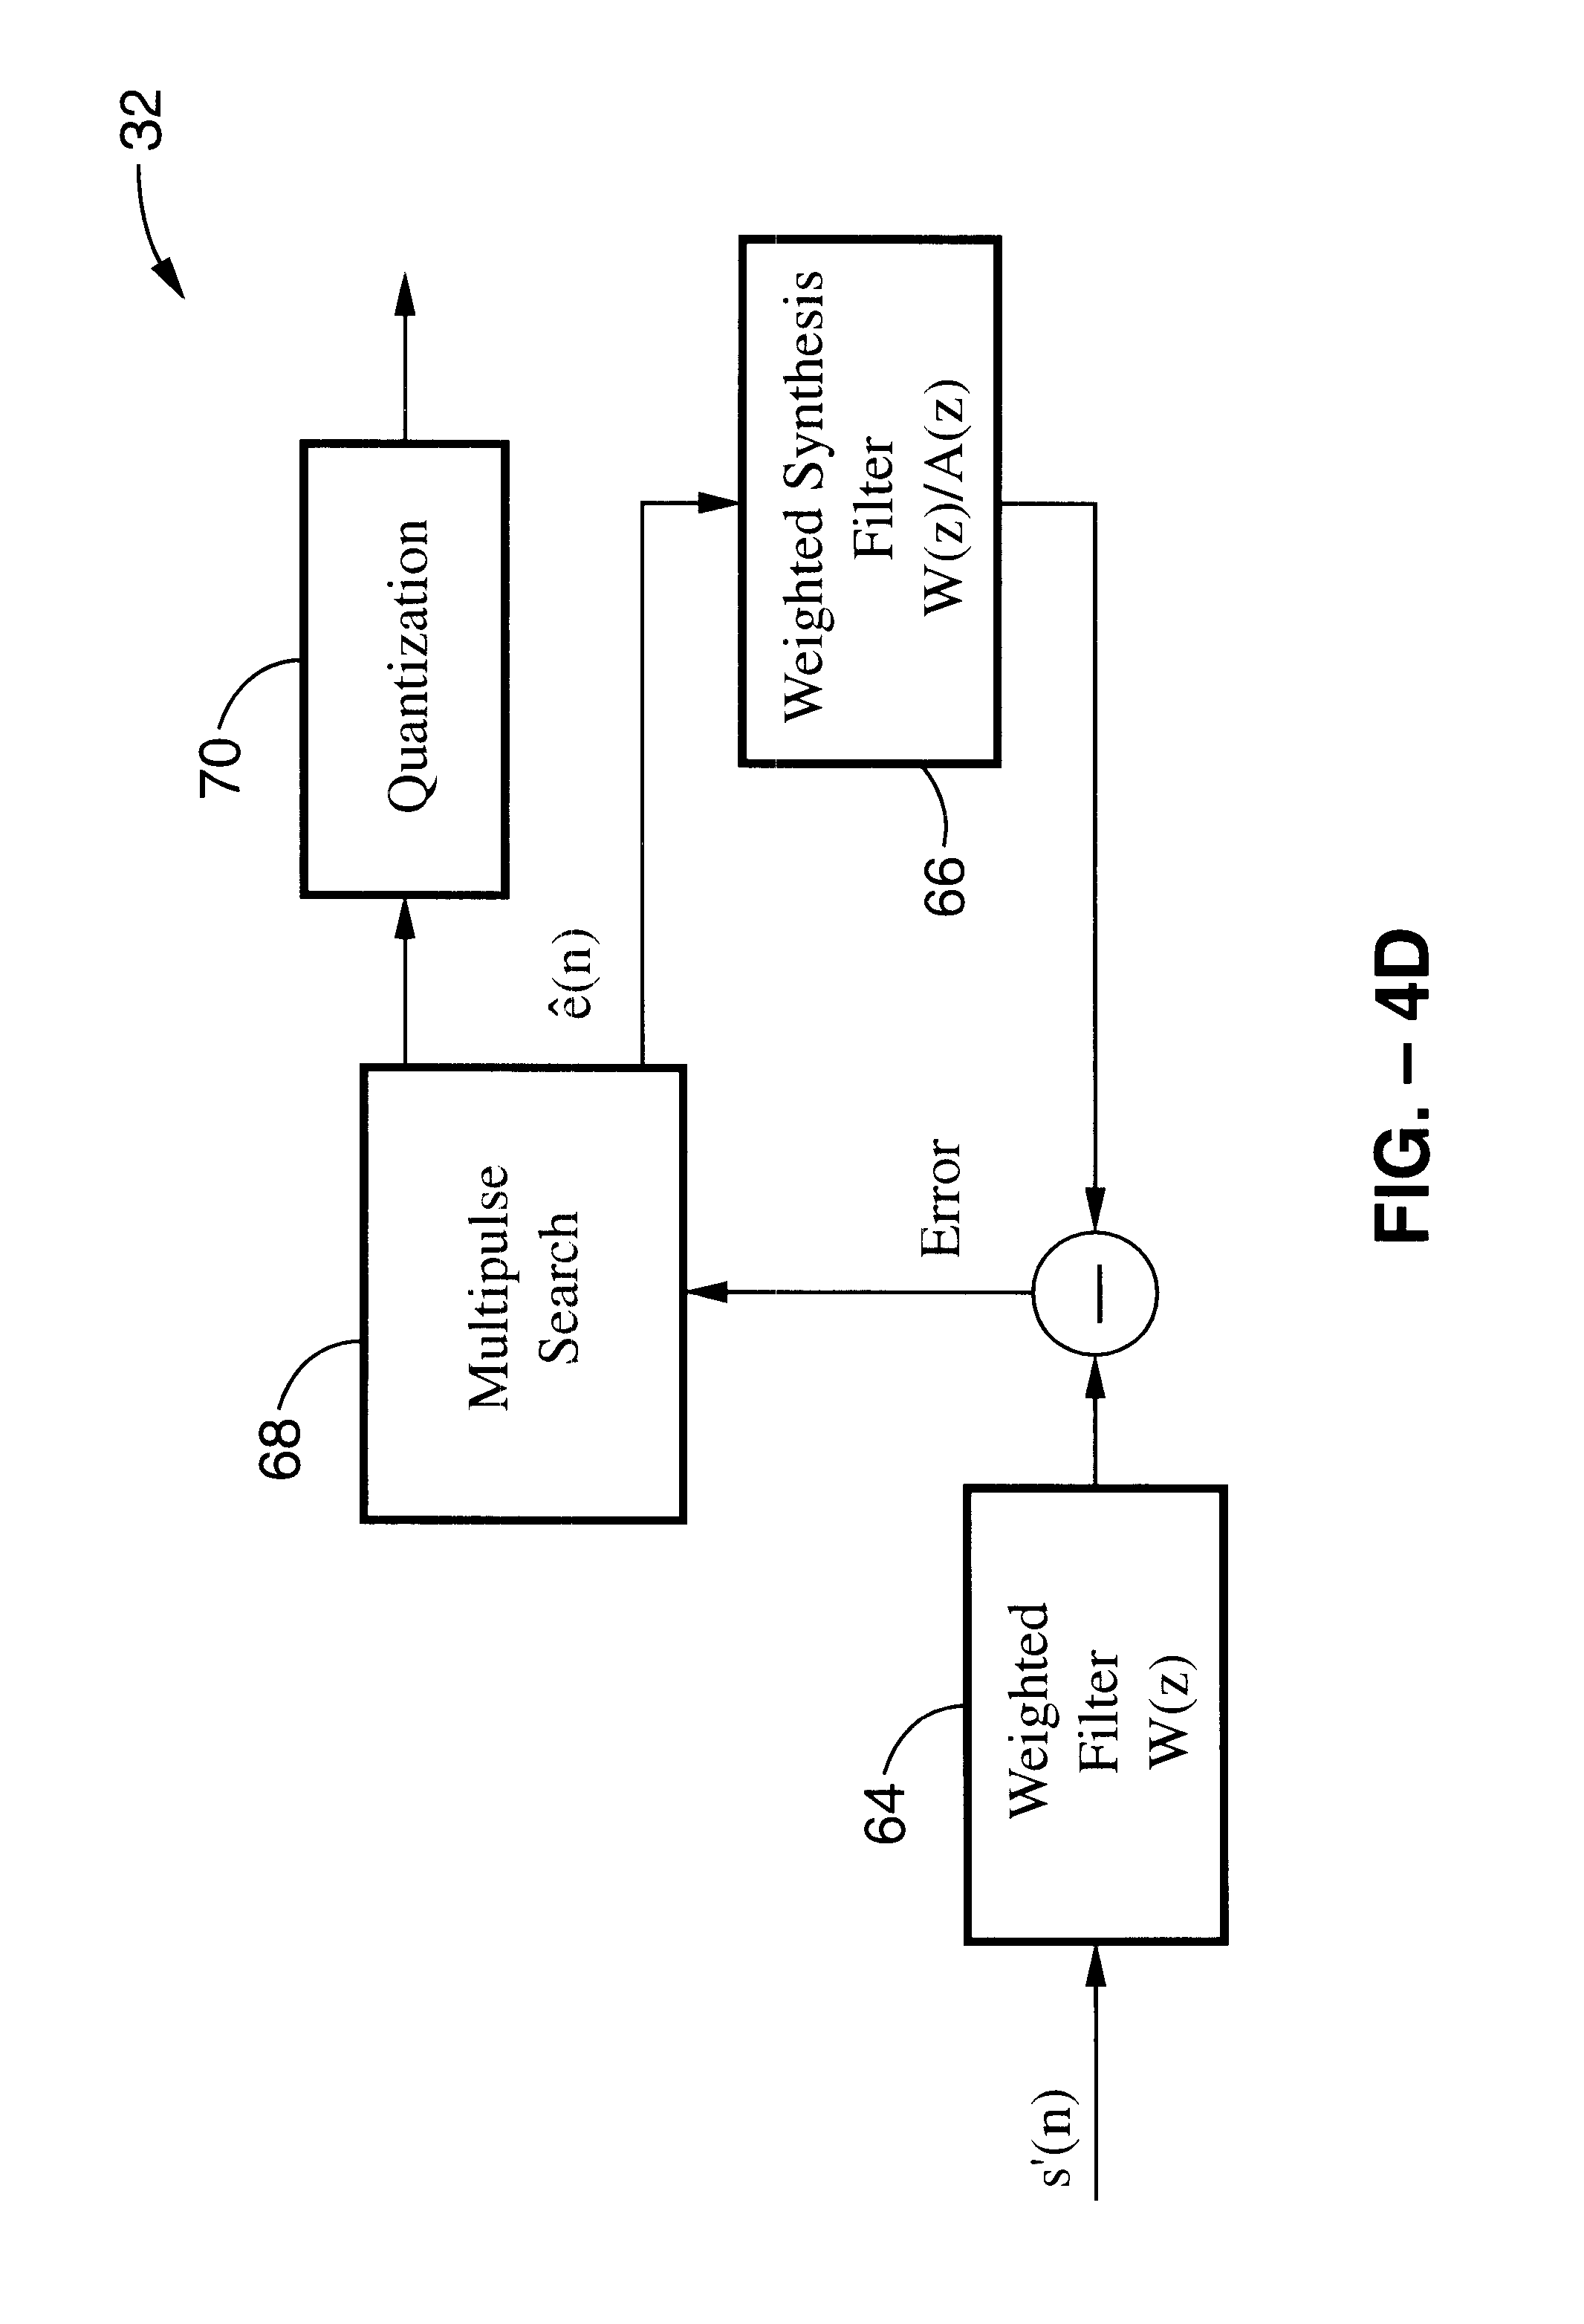 Patent Us6475245 Method And Apparatus For Hybrid Coding Of Speech Threemode Tone Generator Circuit Drawing